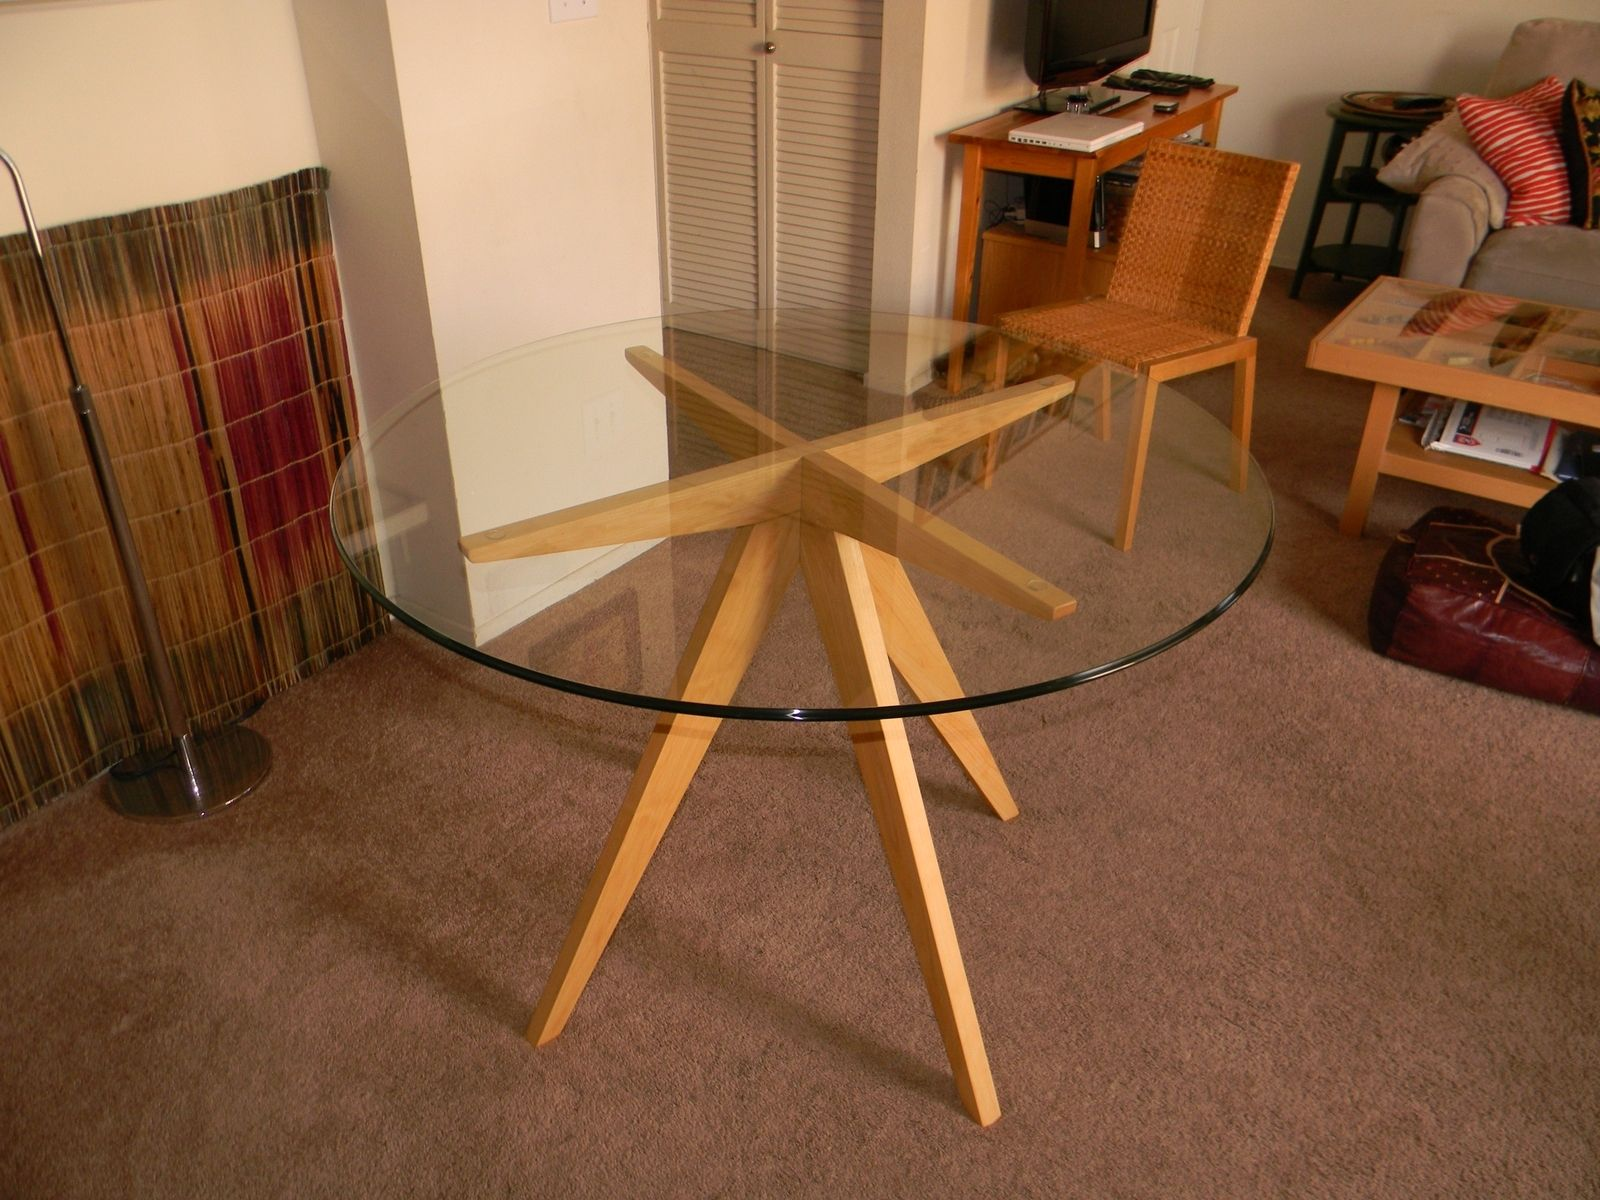 Table Base For Glass Top Dining Table | Dining room | Pinterest ...